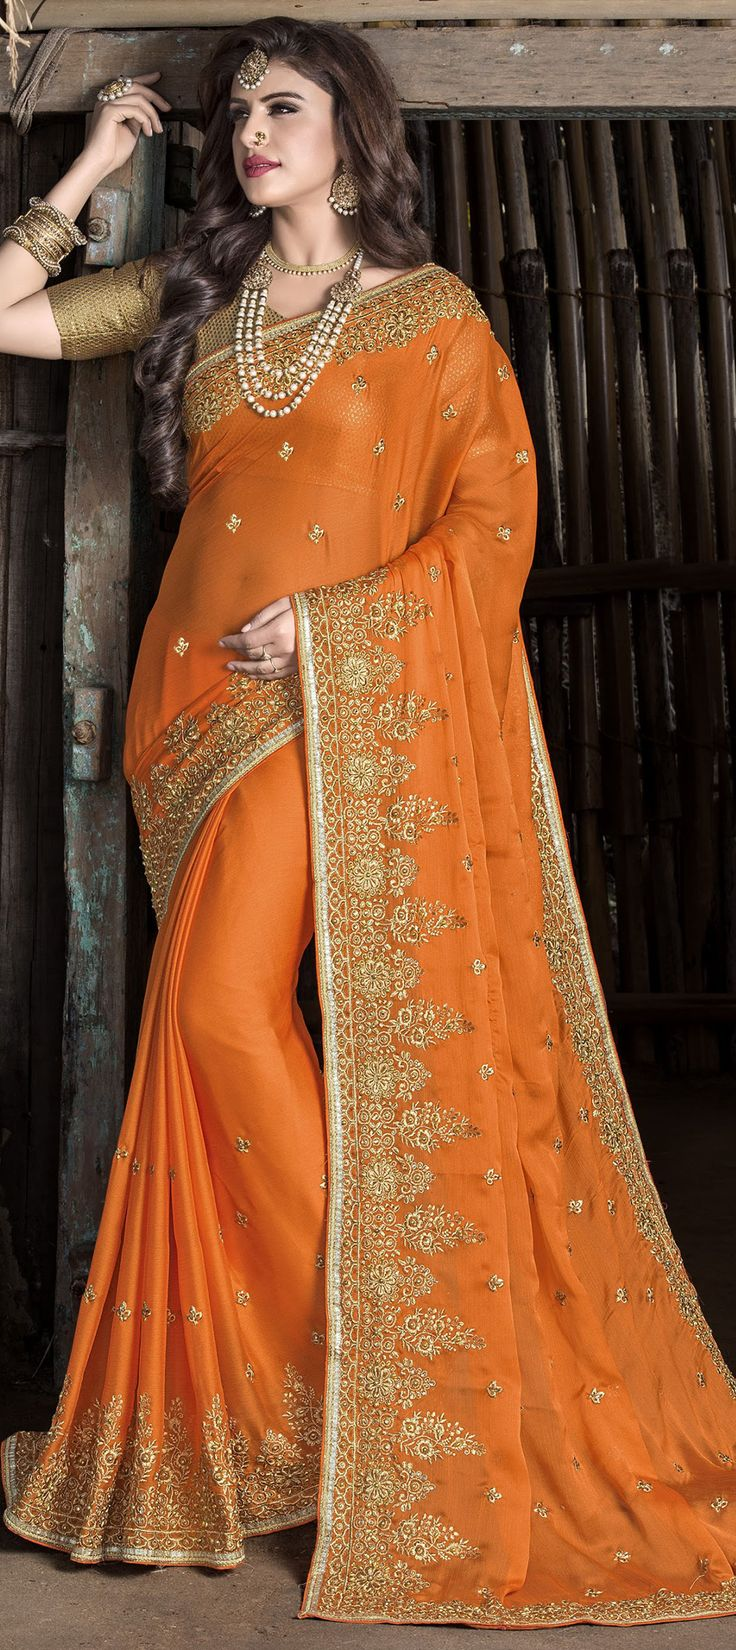 739021 Orange color family Embroidered Sarees, Party Wear Sarees in Chiffon fabric with Lace, Machine Embroidery, Stone, Thread, Zari work with matching unstitched blouse.